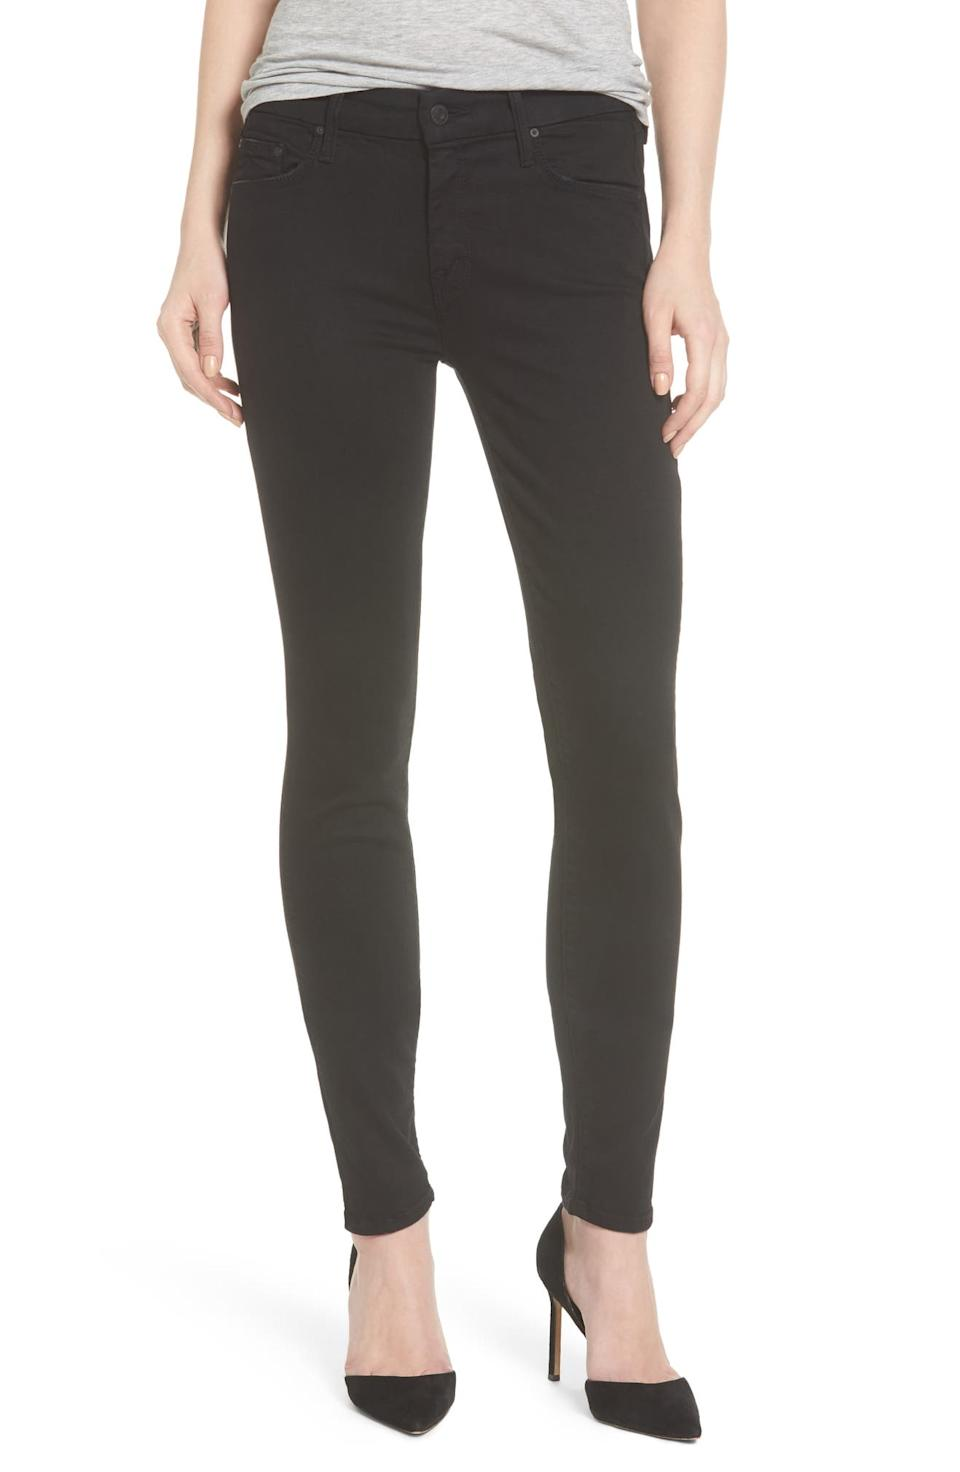 Mother 'The Looker' Mid Rise Skinny Jeans. Image via Nordstrom.